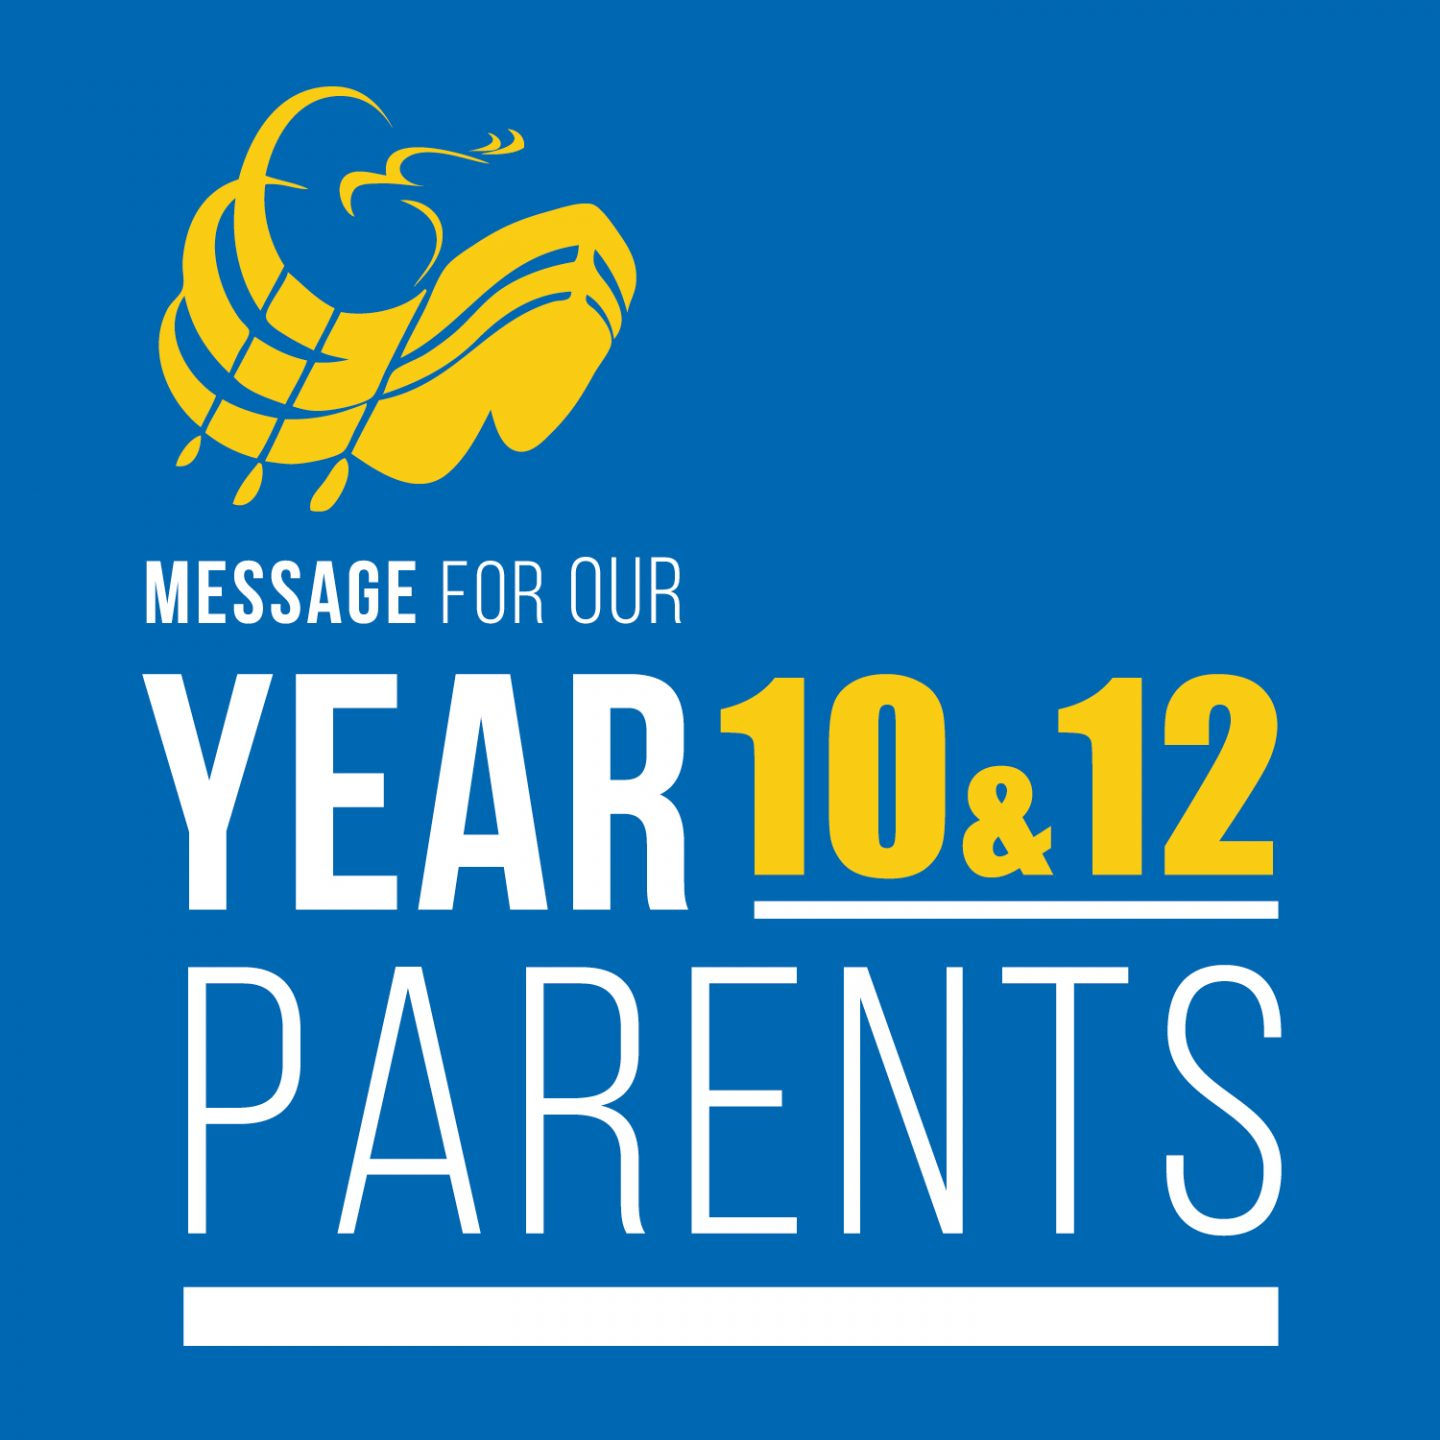 Message for our Year 10&12 Parents - SQ